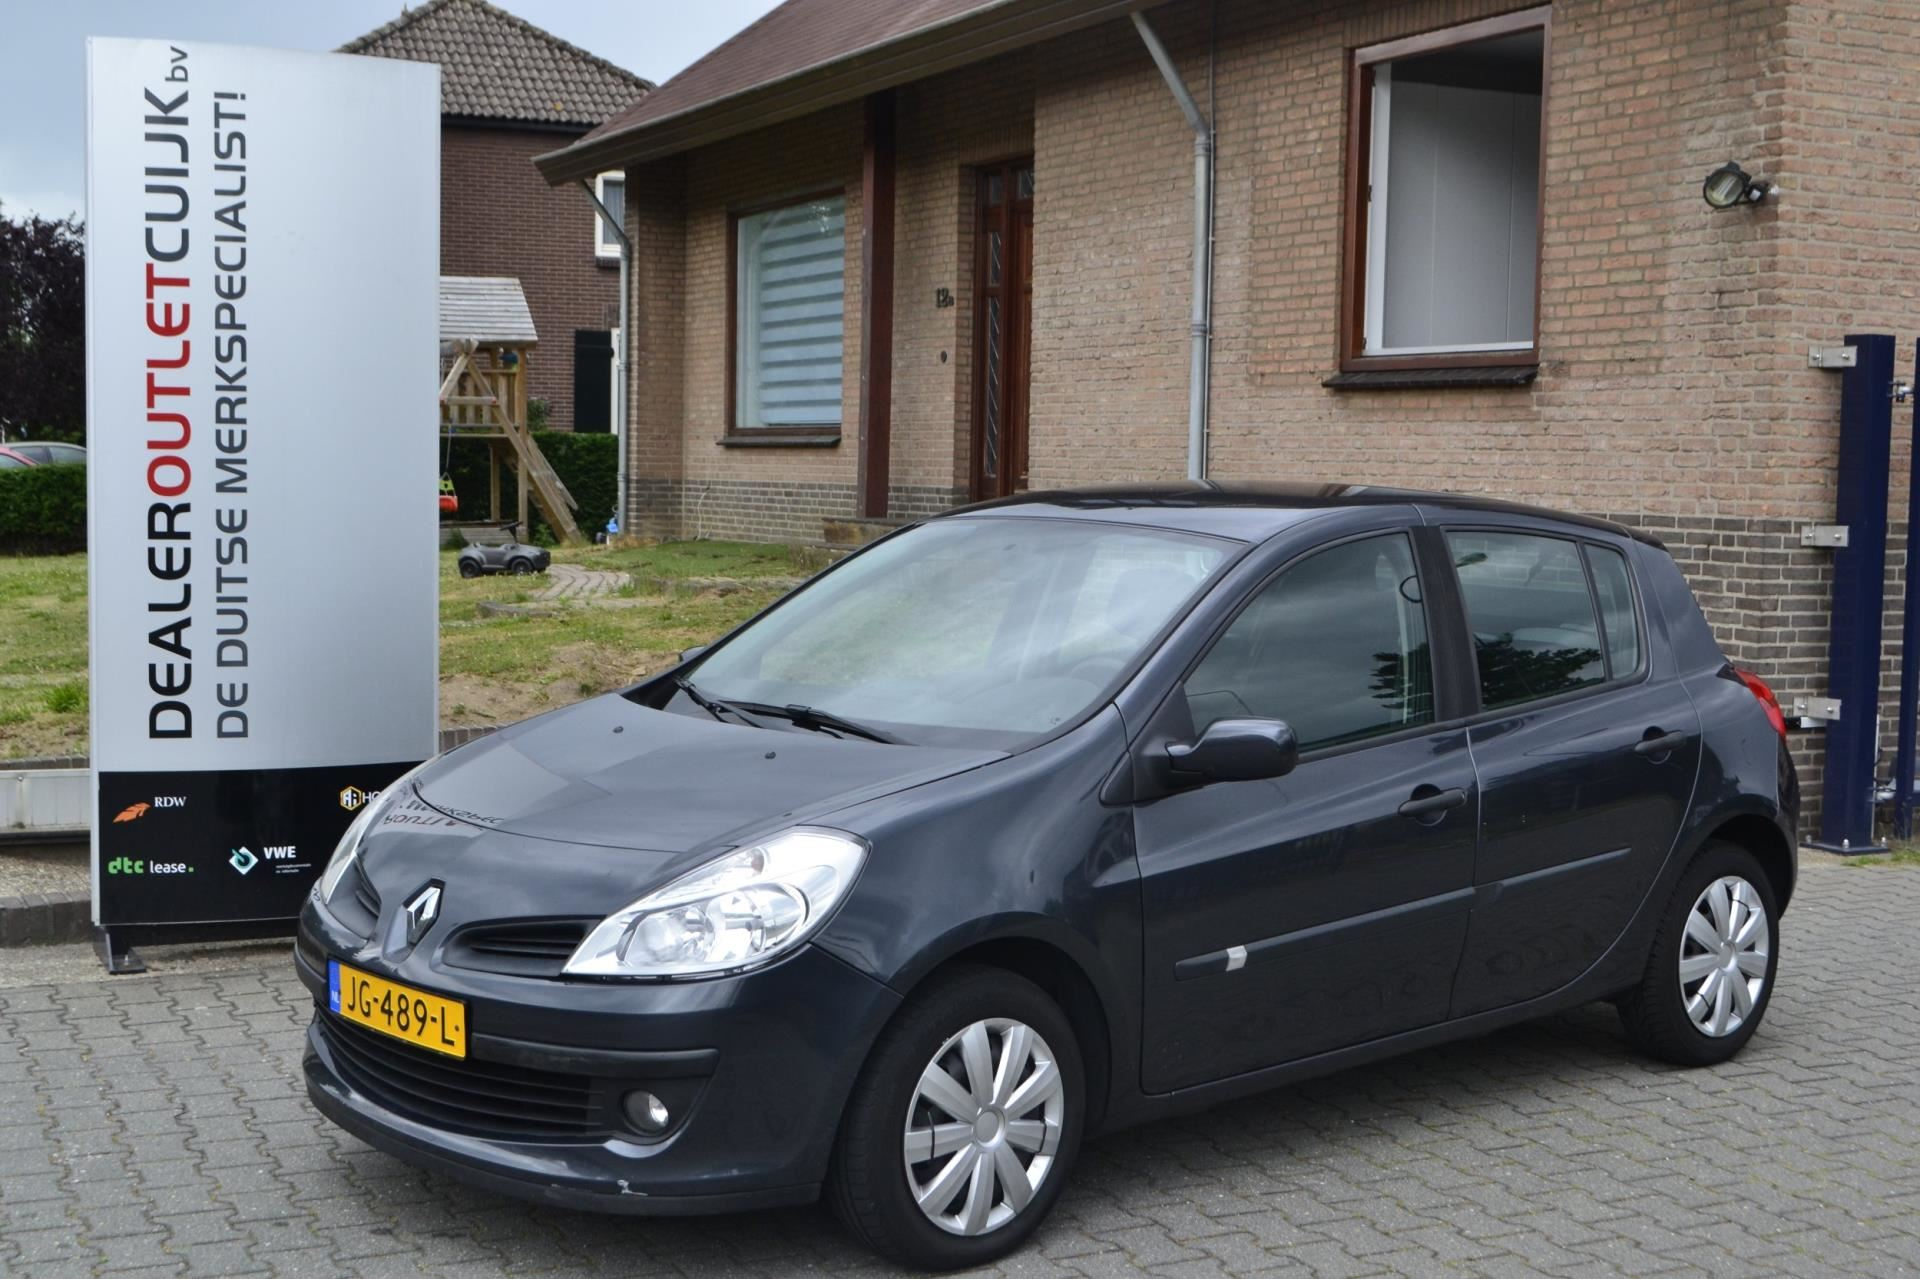 Renault Clio occasion - Dealer Outlet Cuijk b.v.